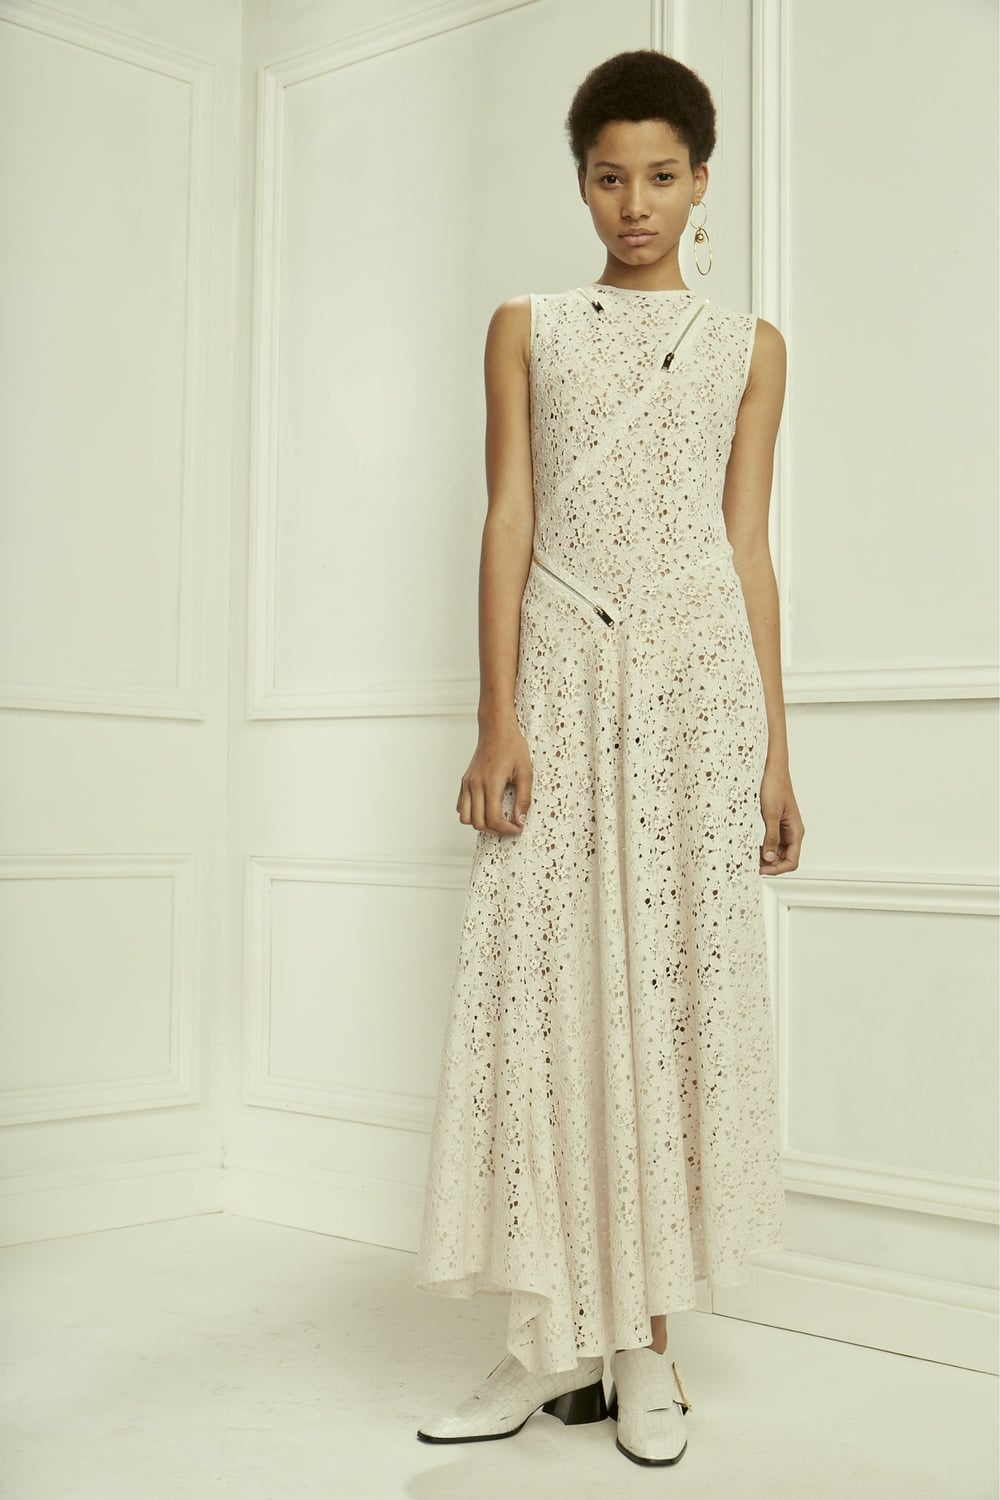 stella-mccartney-pre-fall-2016-lookbook-26.jpg